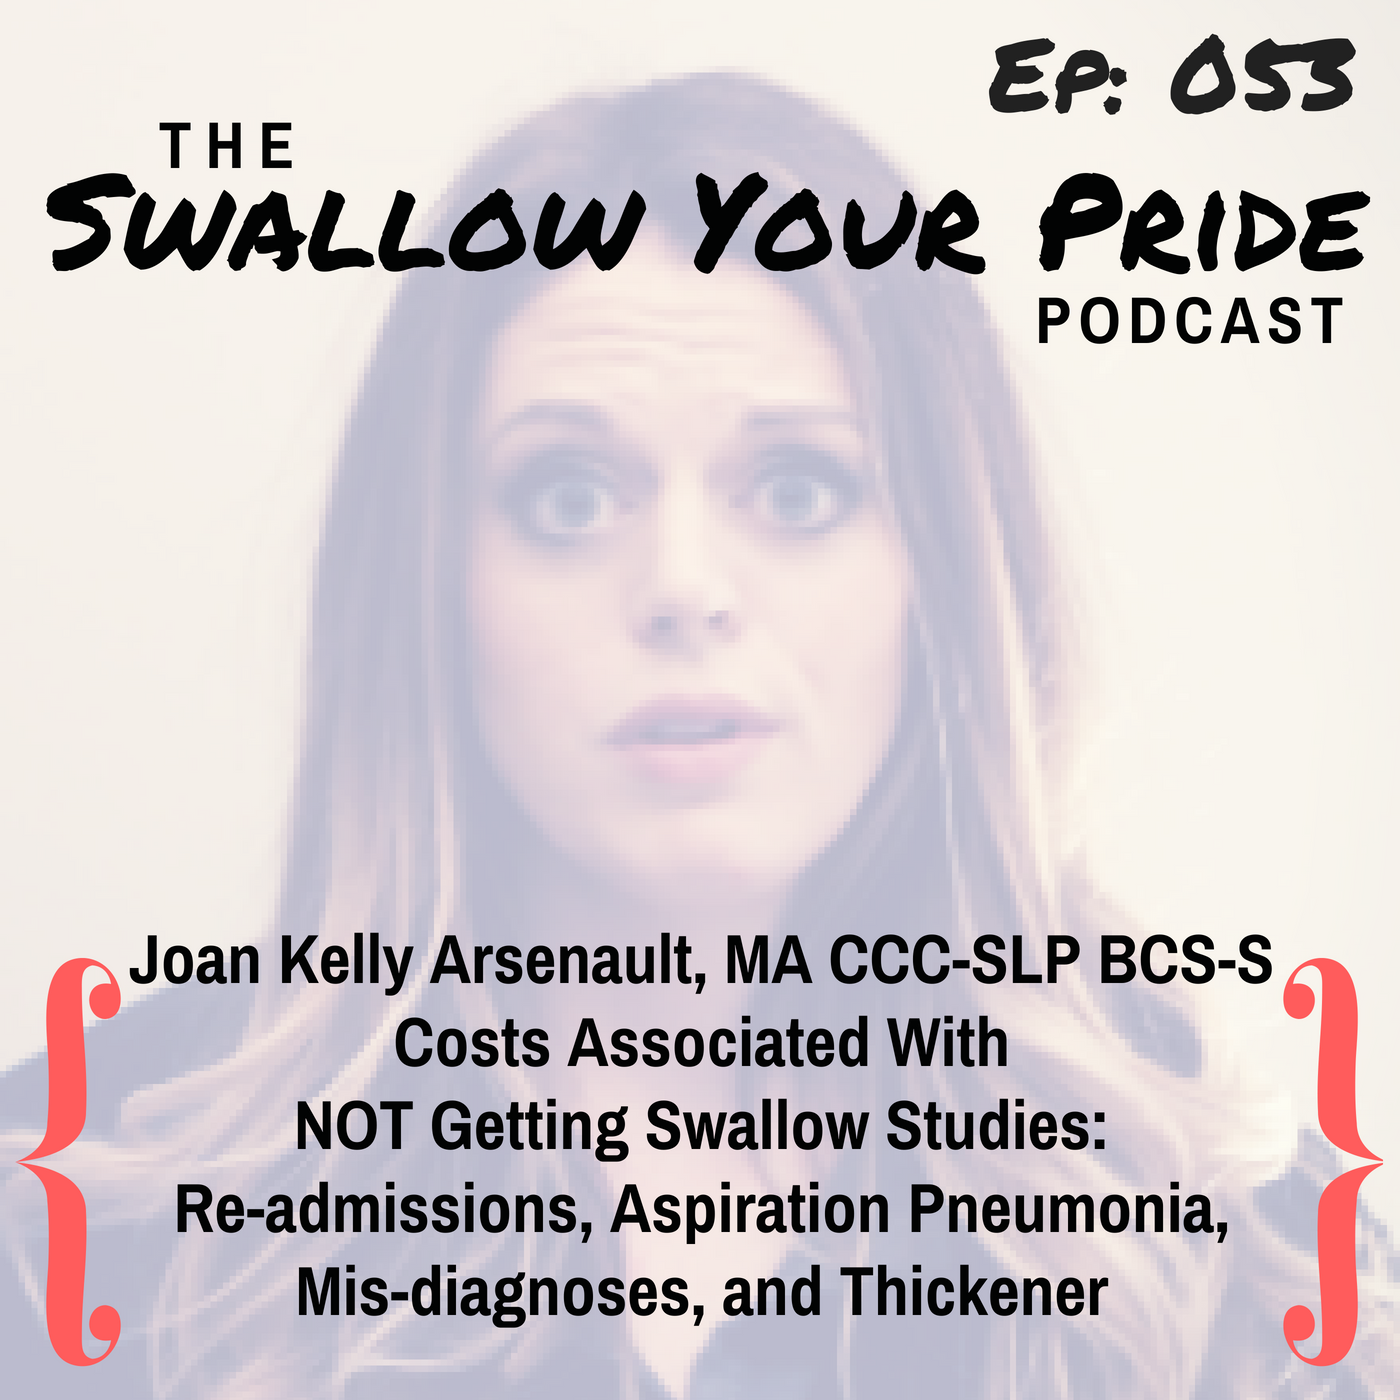 053 – Joan Kelly Arsenault, MA, CCC-SLP, BCS-S – Costs Associated With  NOT Getting Swallow Studies:  Re-admissions, Aspiration Pneumonia,  Mis-diagnoses, and Thickener